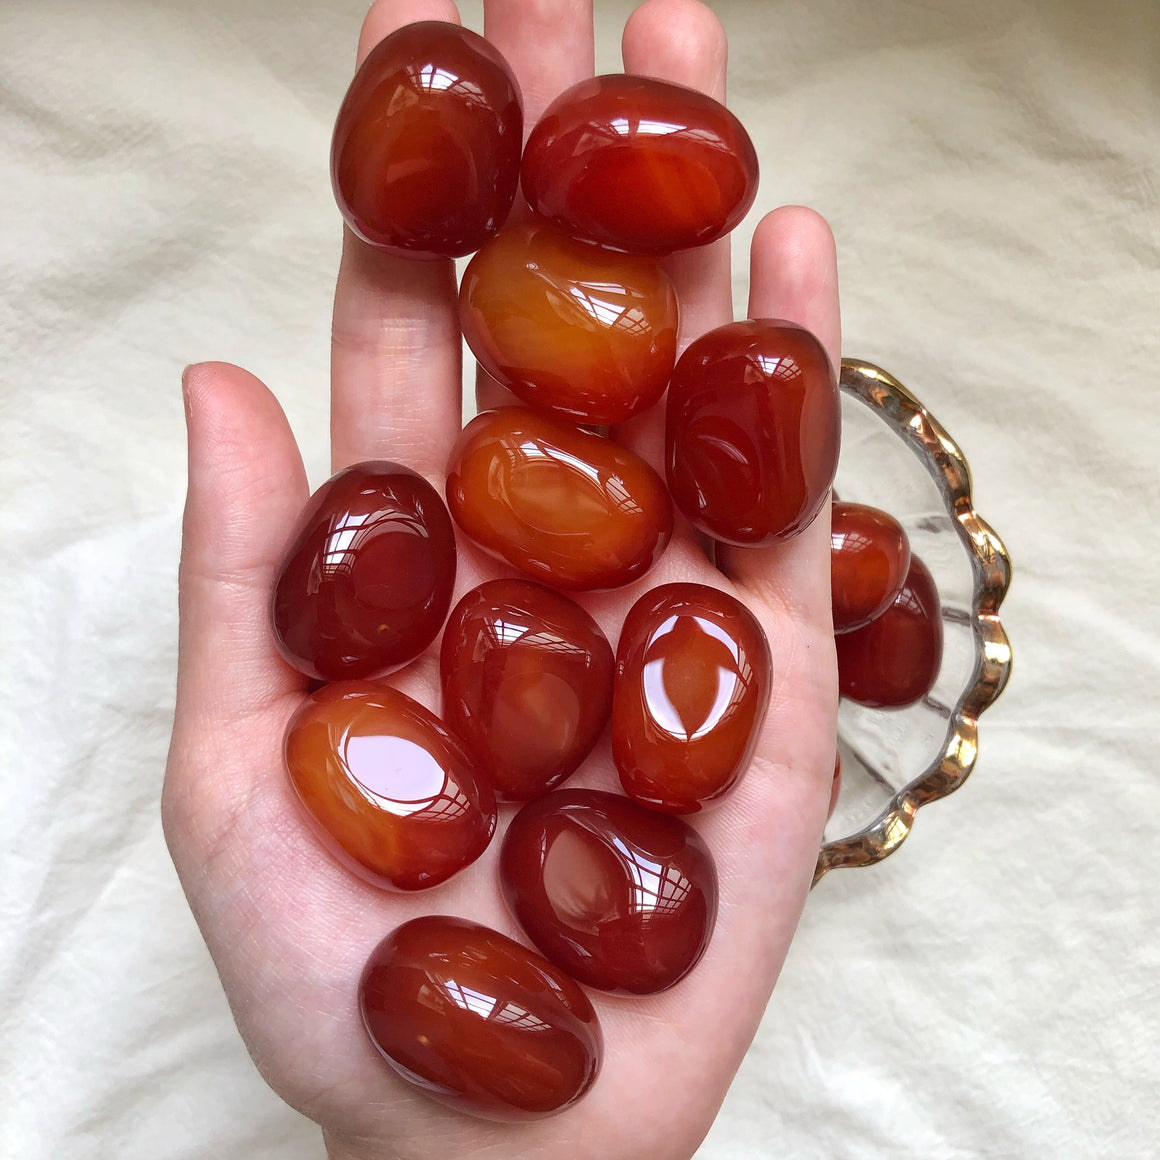 Dark/Red Carnelian XQ Tumbled Stones